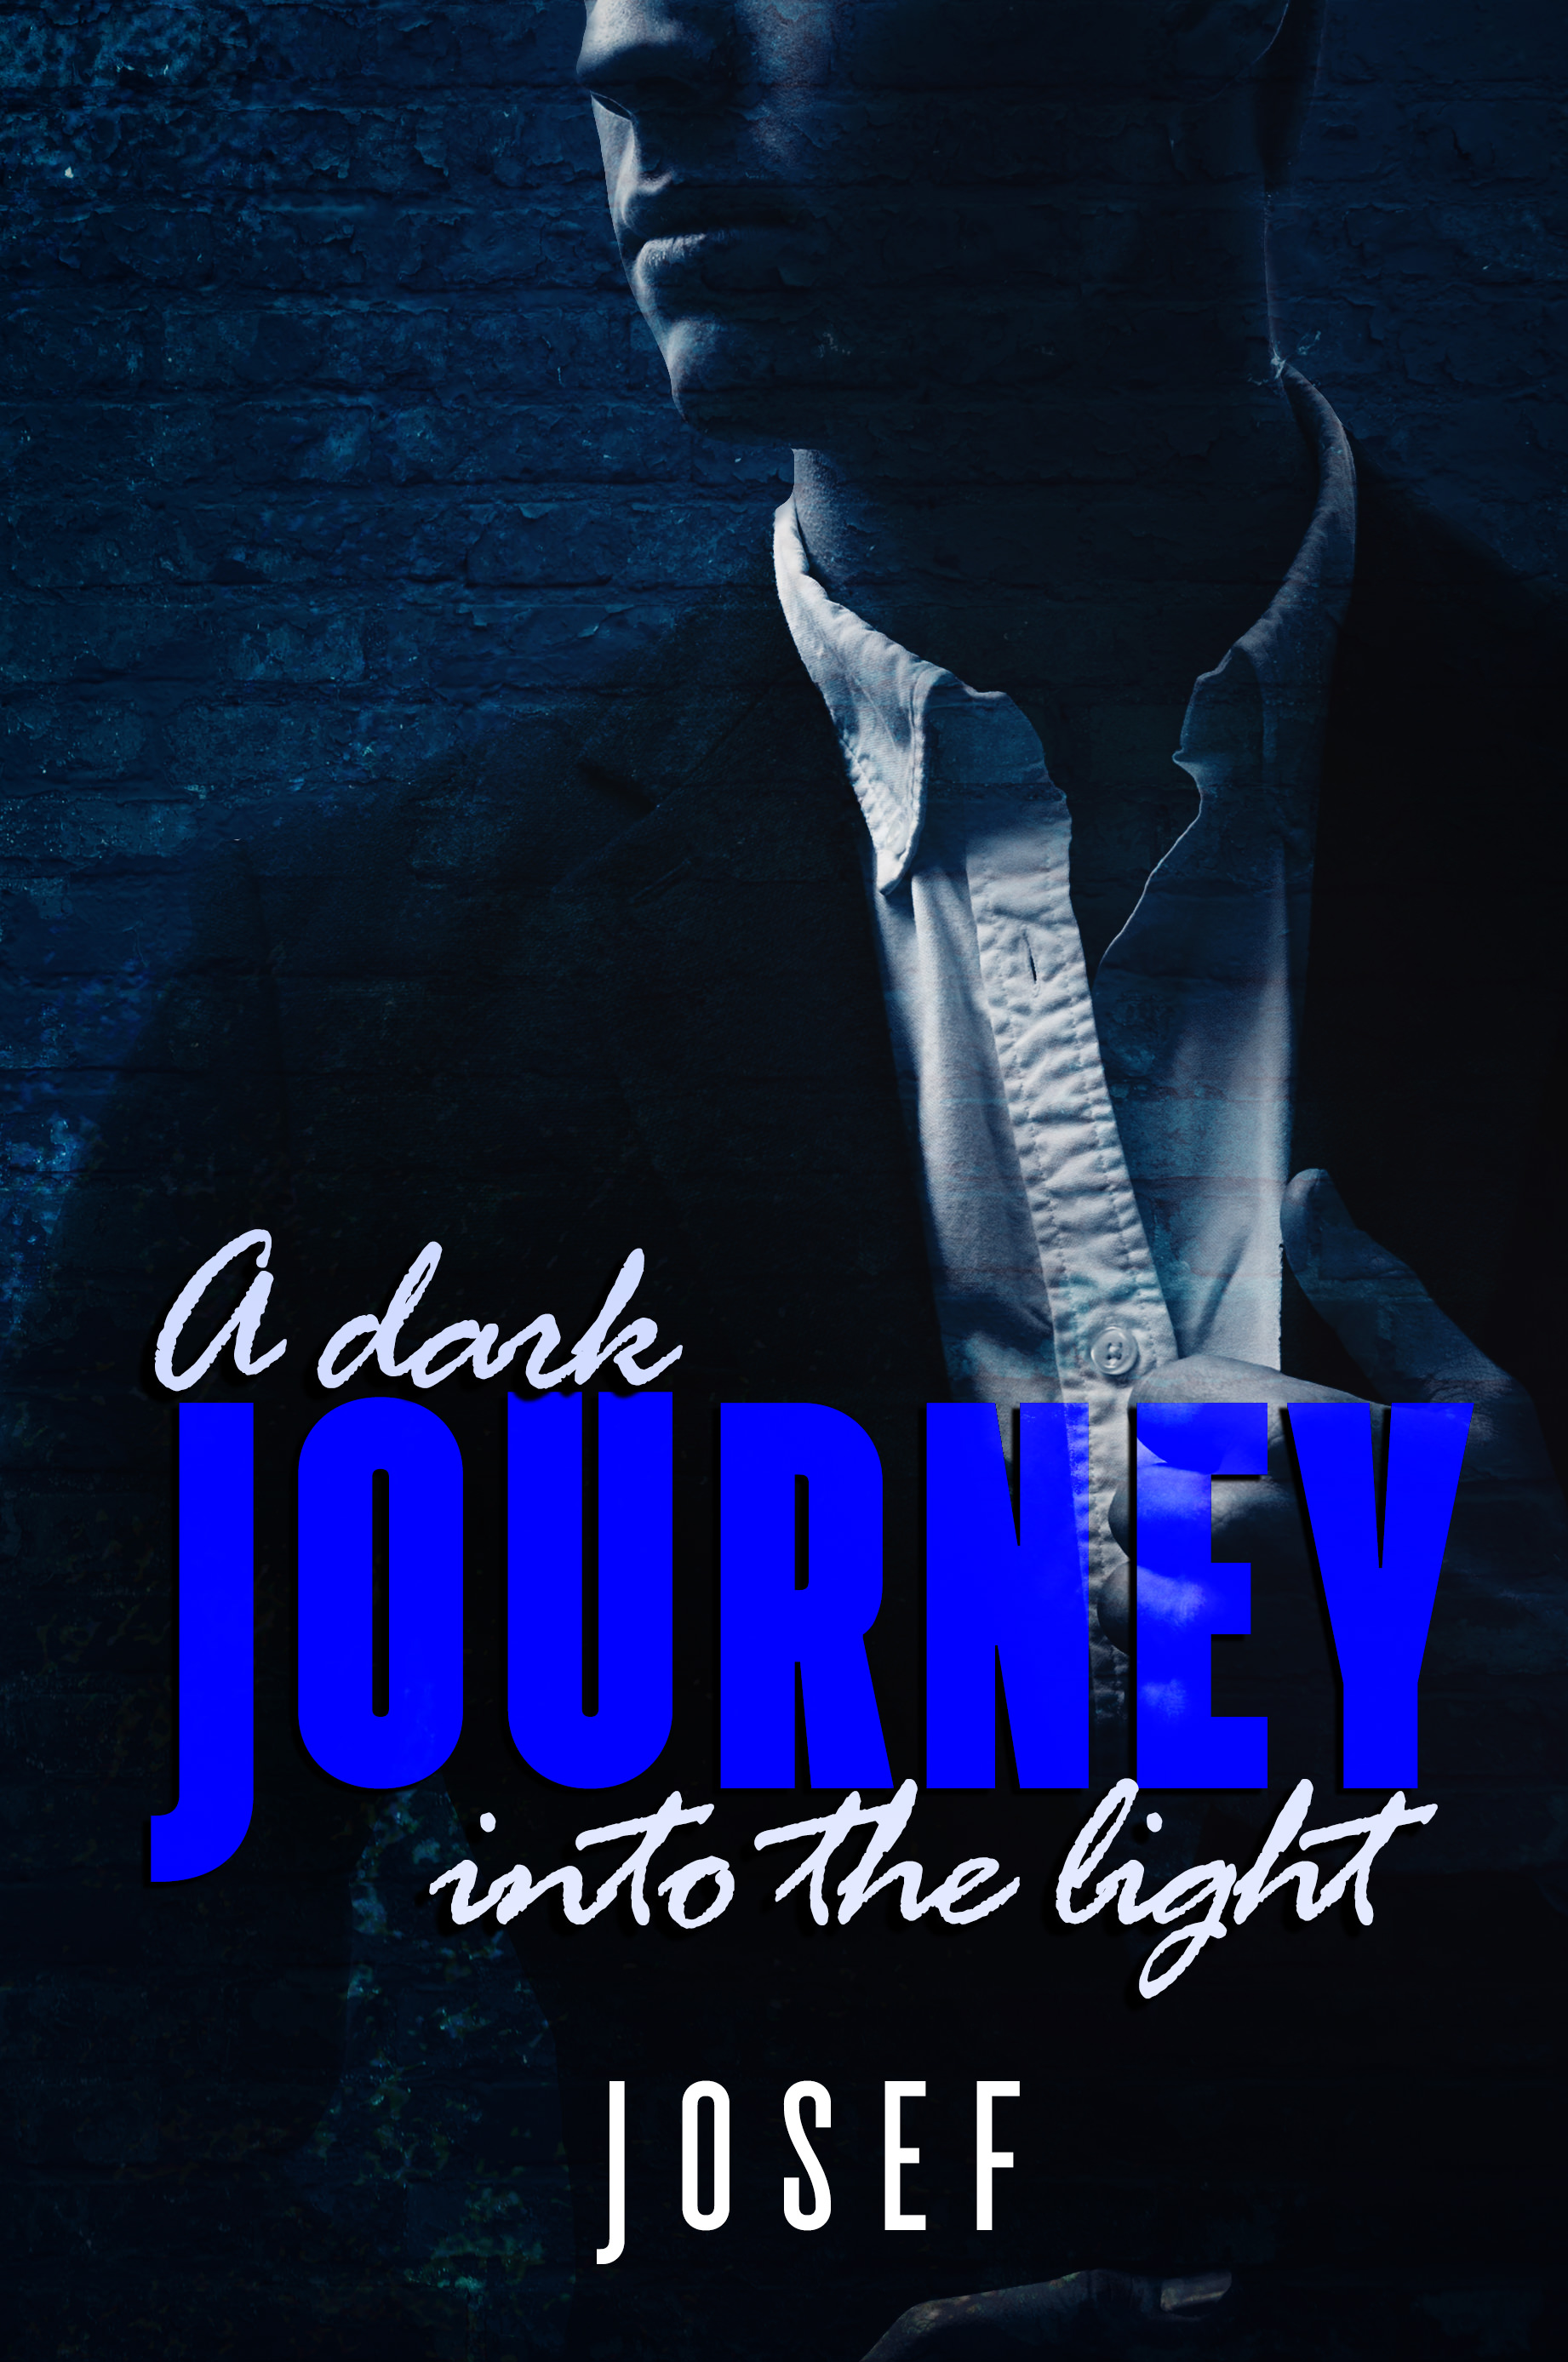 Review: A dark journey into the light